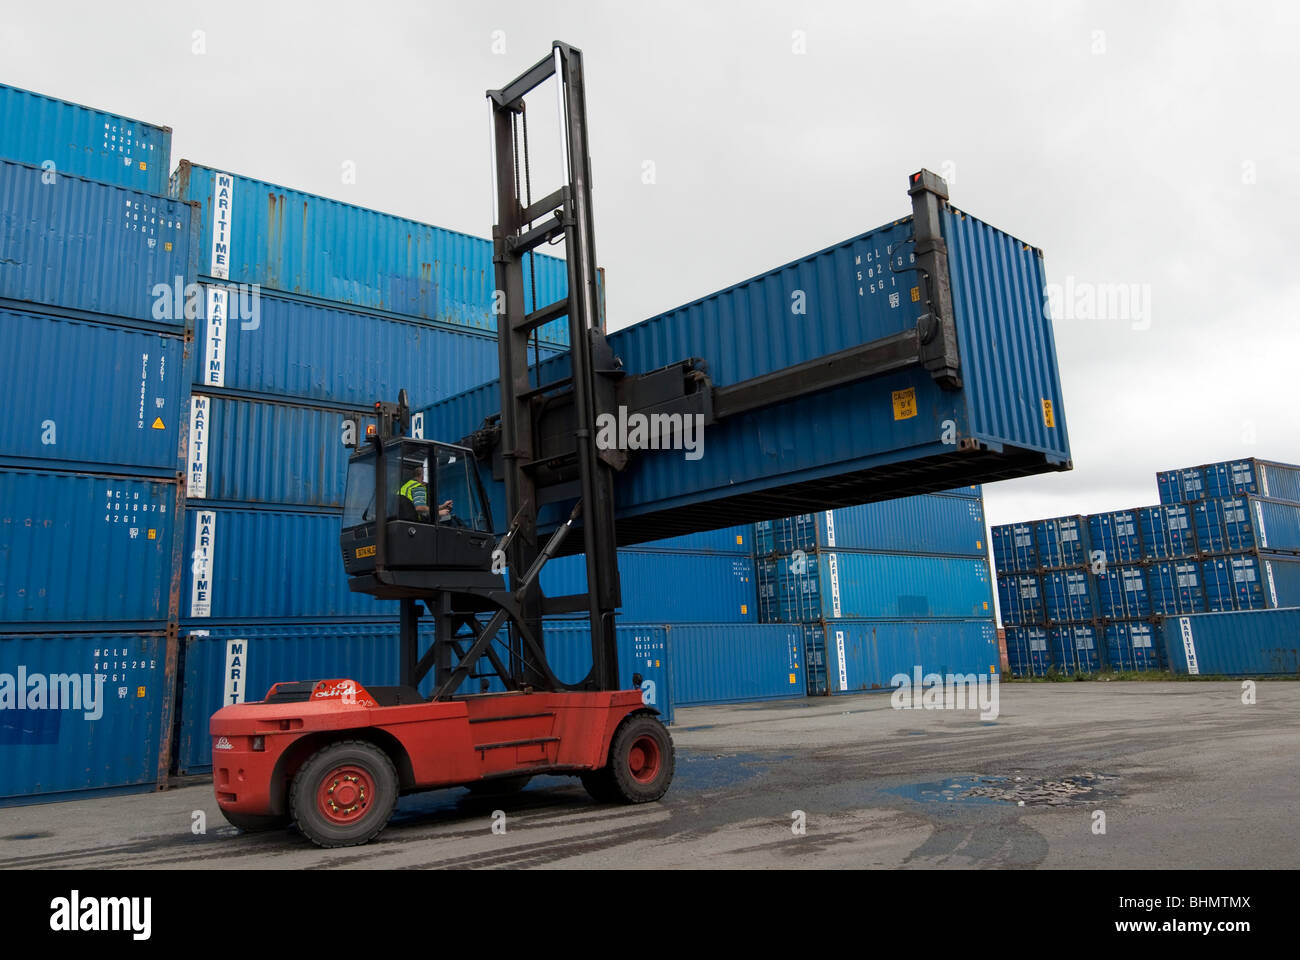 Container Moving Crane Being Used To Position Ships Containers In Storage  Yard